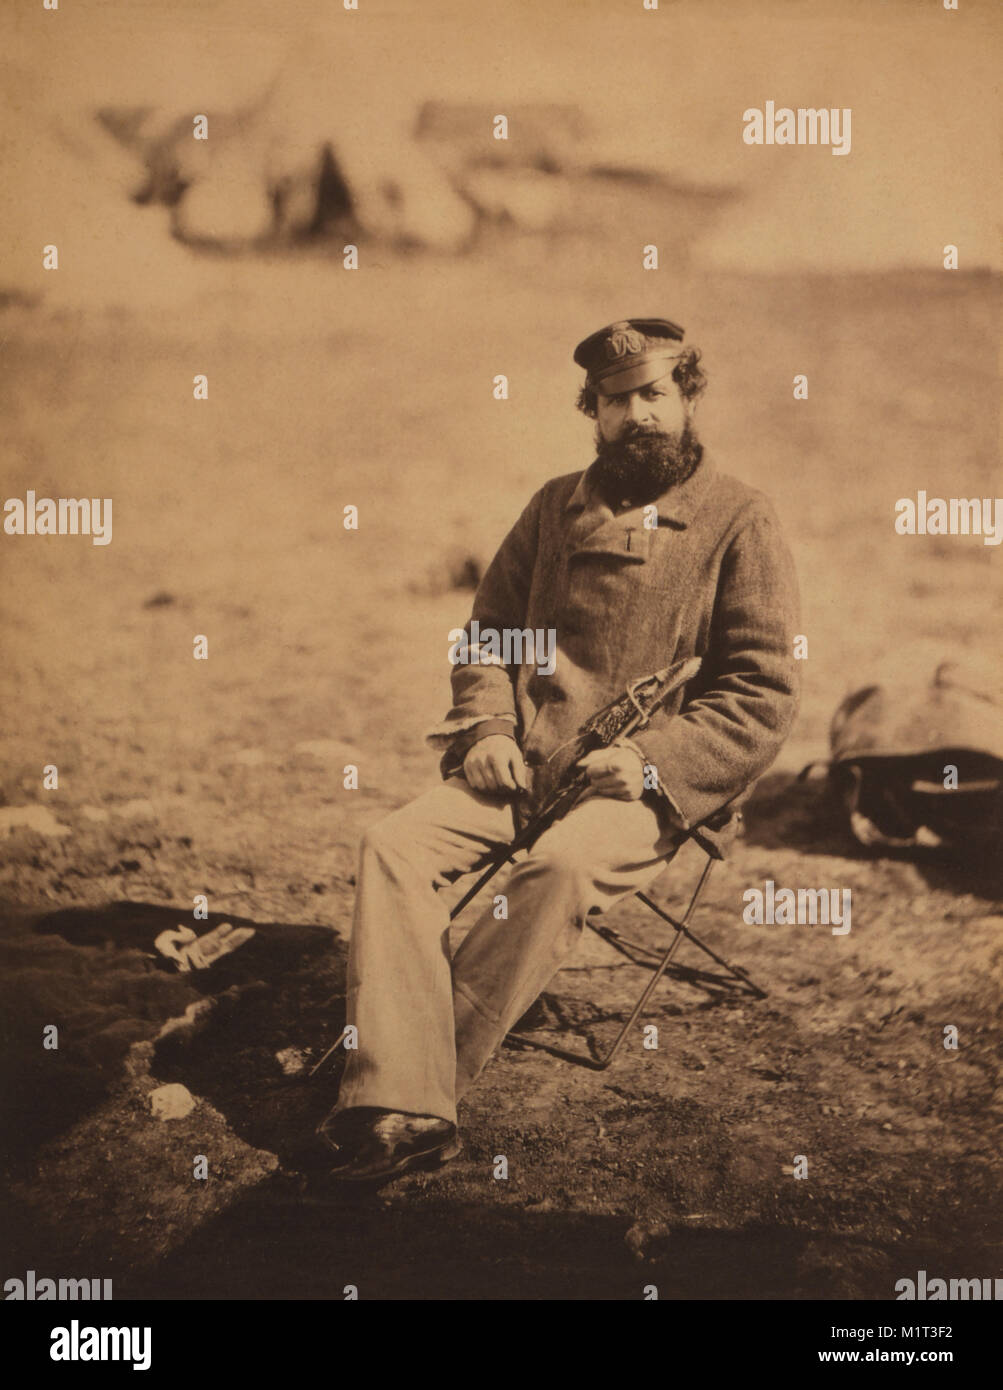 Benjamin William Marlow, British Military Doctor, Full-Length Portrait, Seated, Holding Sword, Crimean War, Crimea, Stock Photo